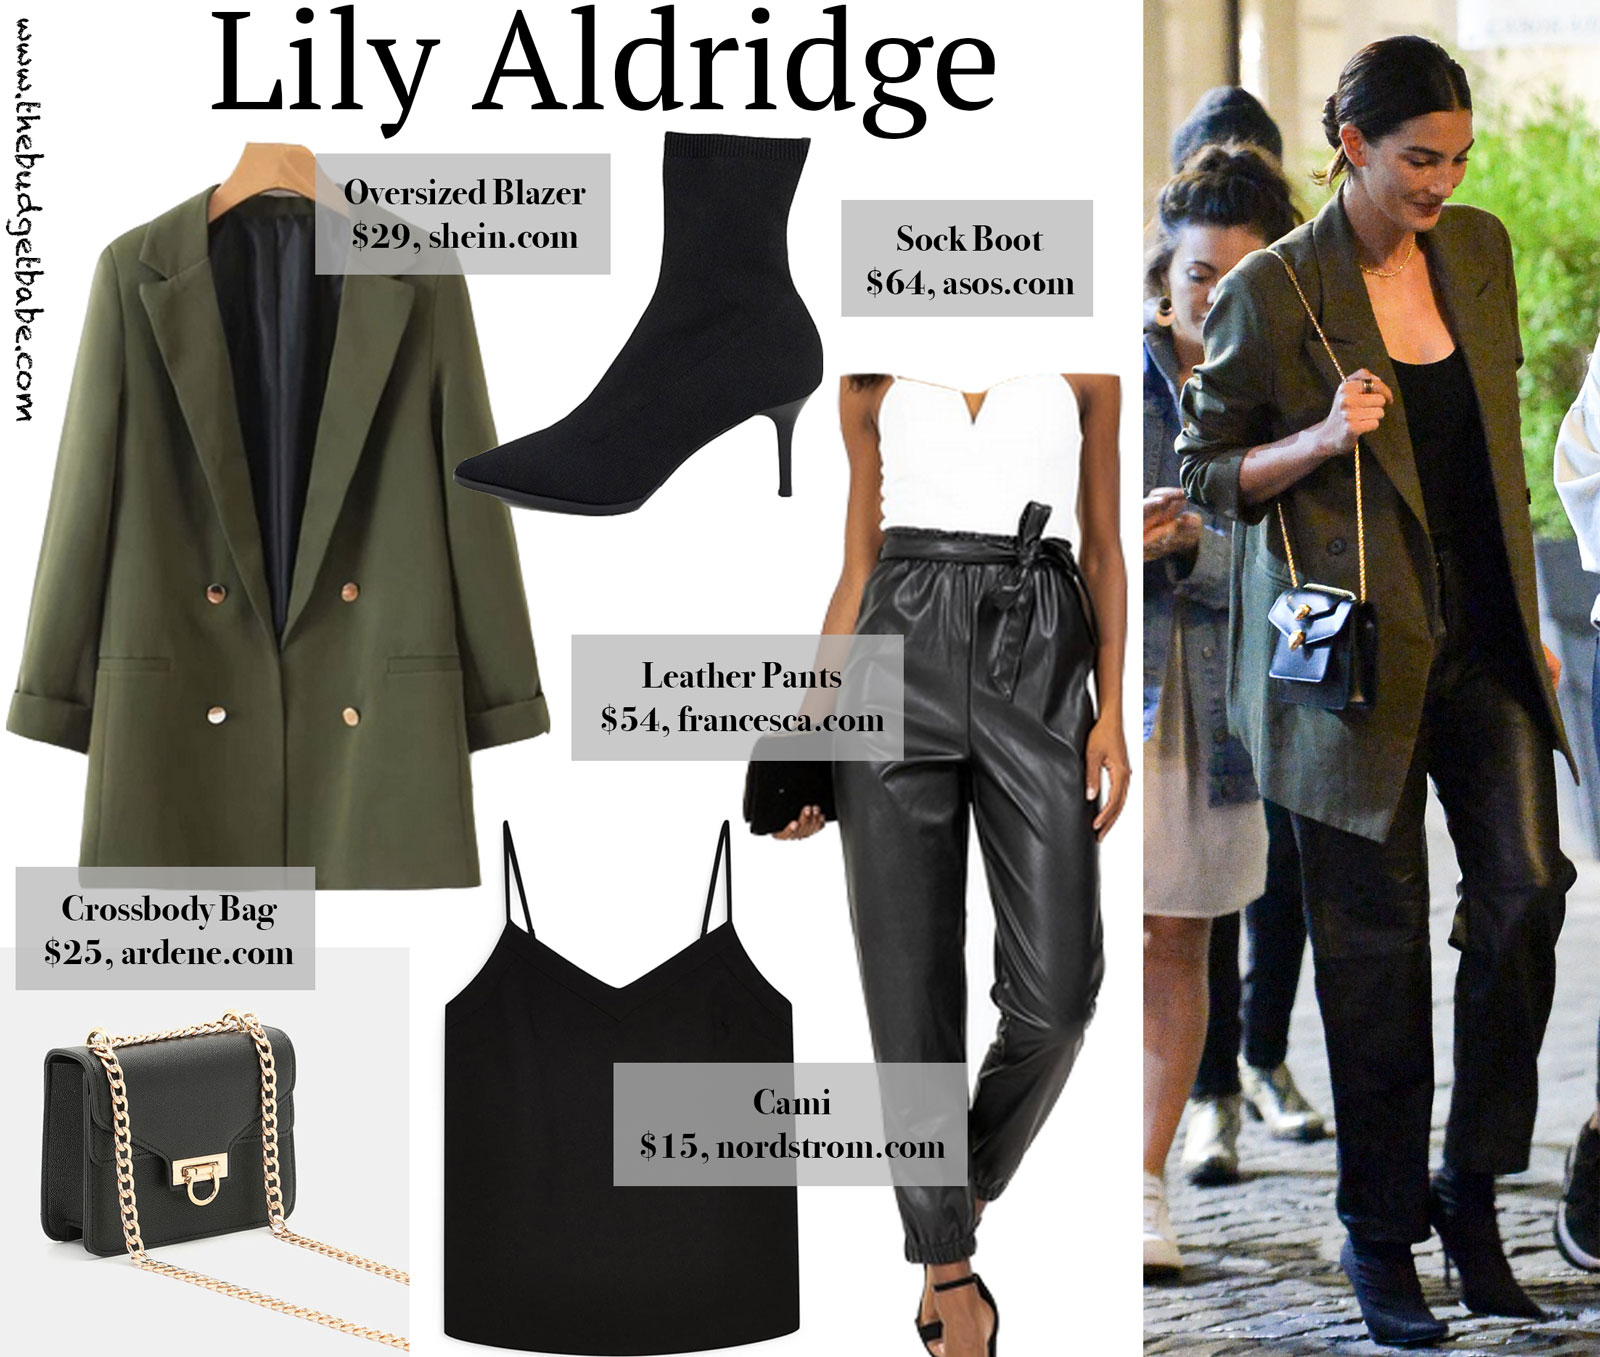 Lily Aldridge Oversized Blazer Look for Less